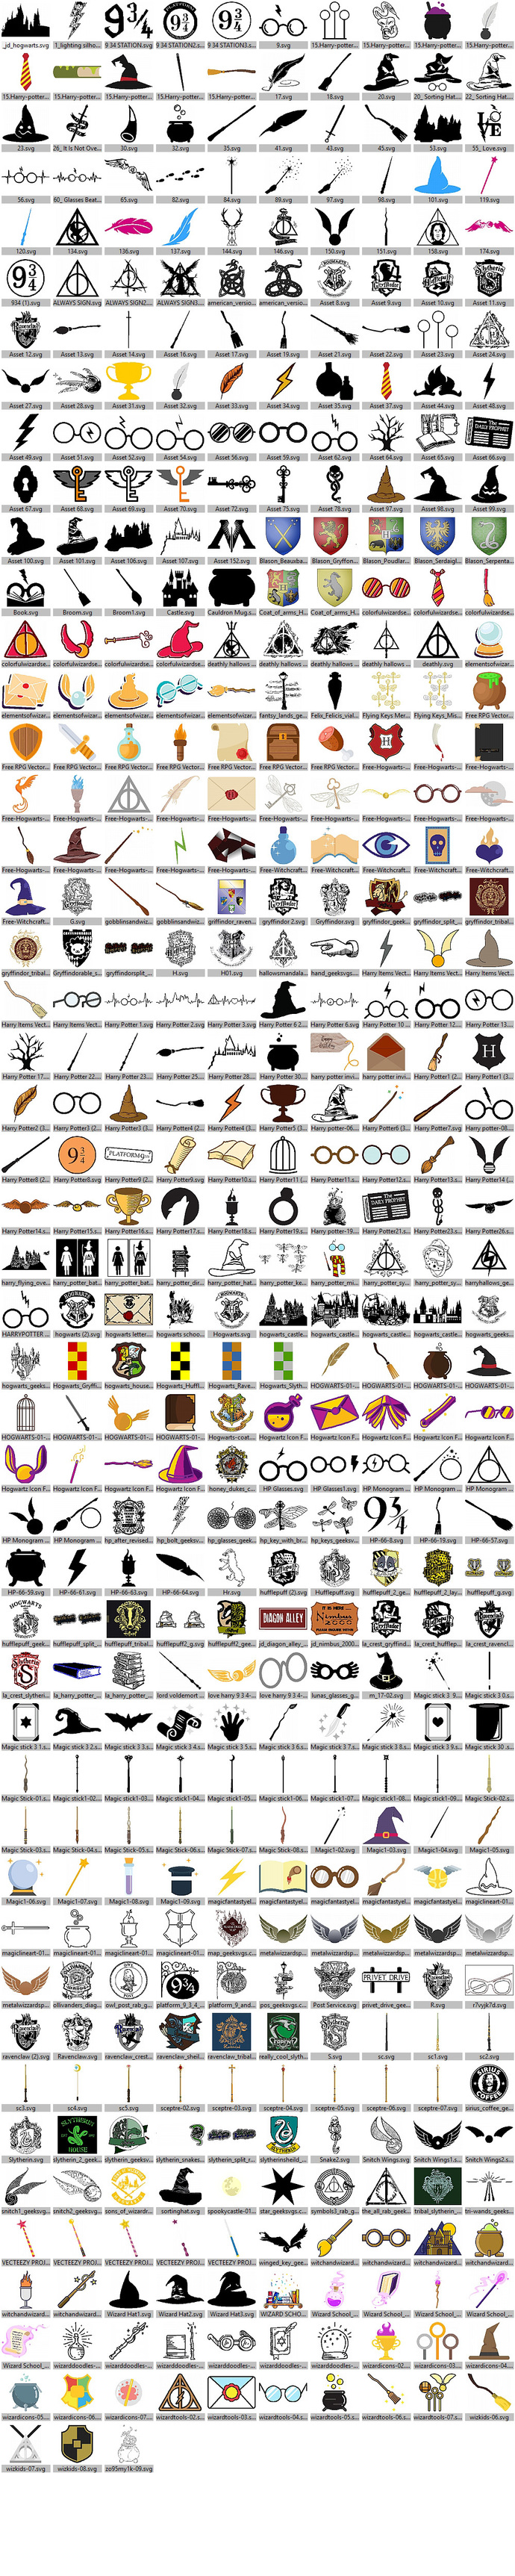 Harry Potter Clipart for Scrapbooking, Craft, Cutting